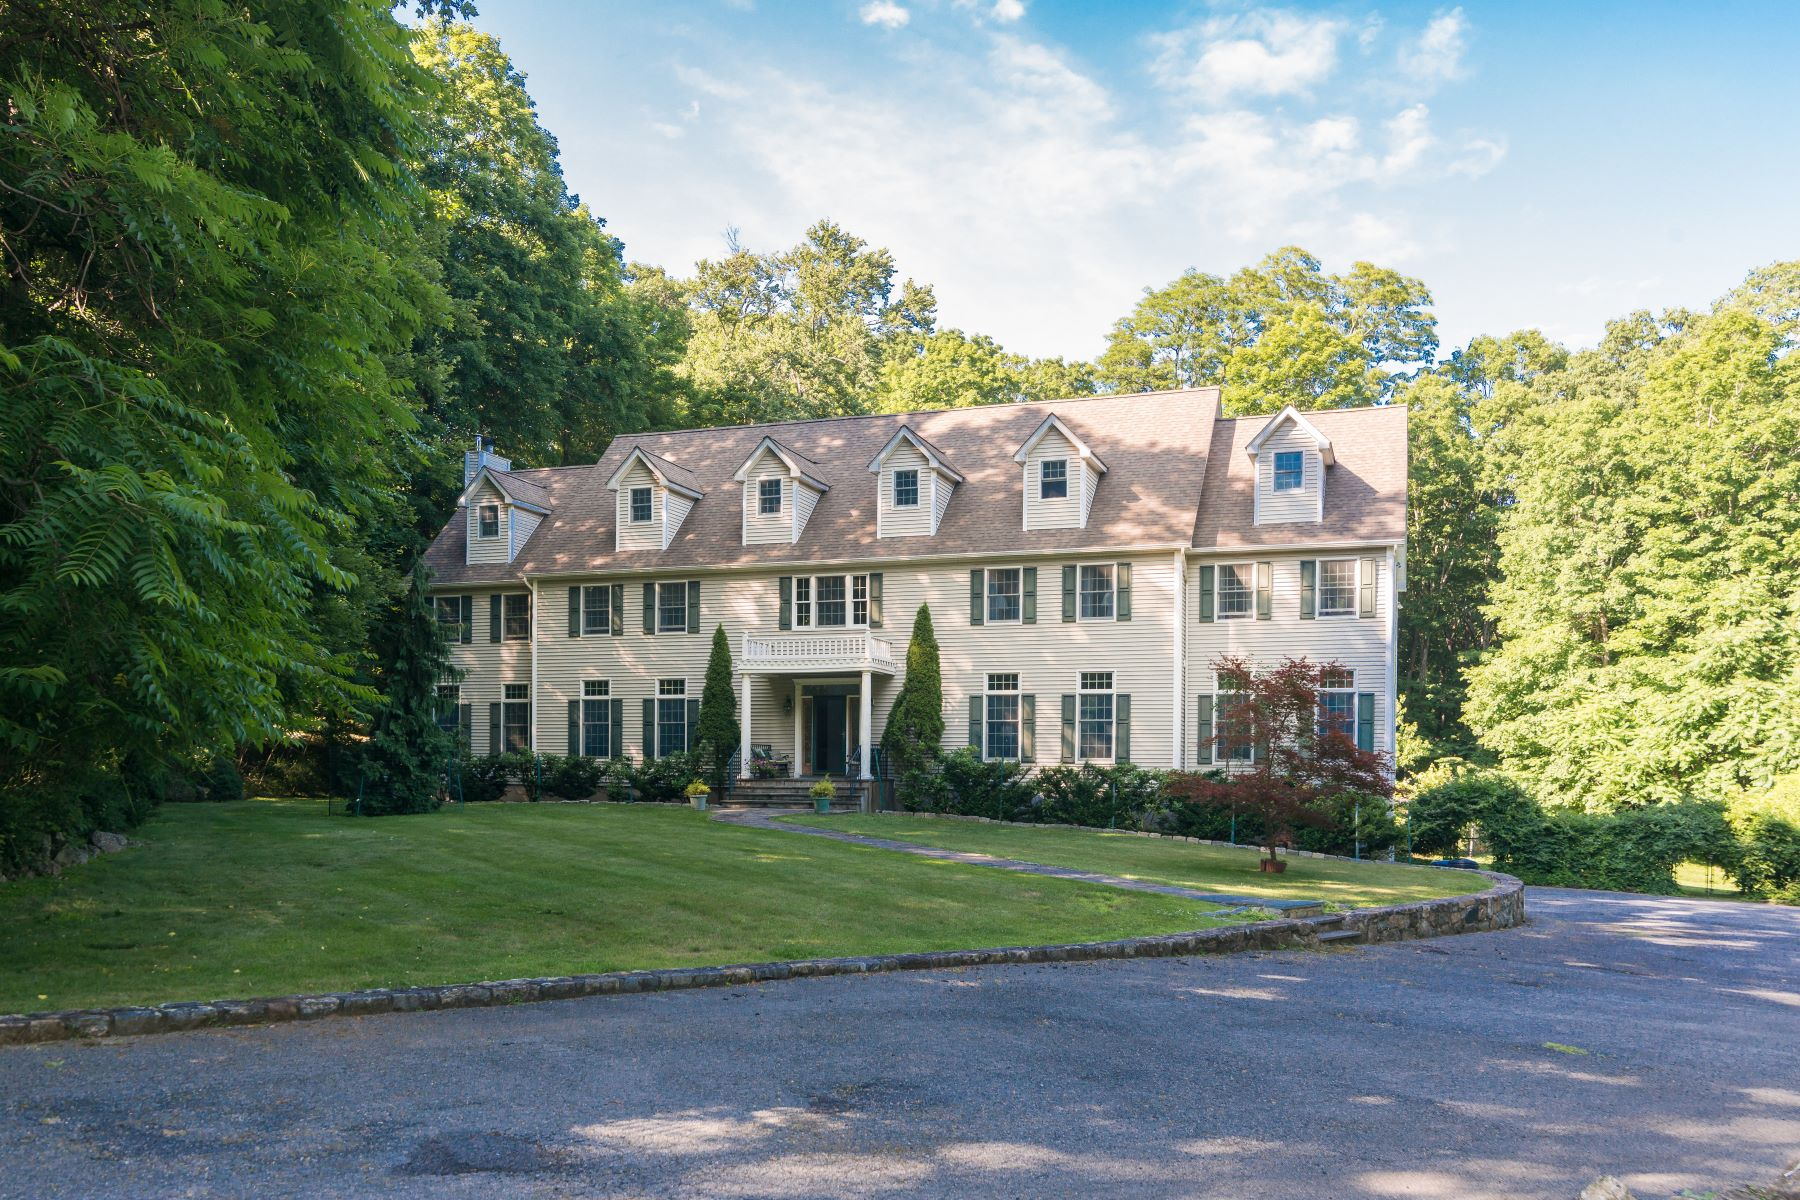 Single Family Home for Sale at 23 Sunderland Lane 23 Sunderland Lane Katonah, New York 10536 United States